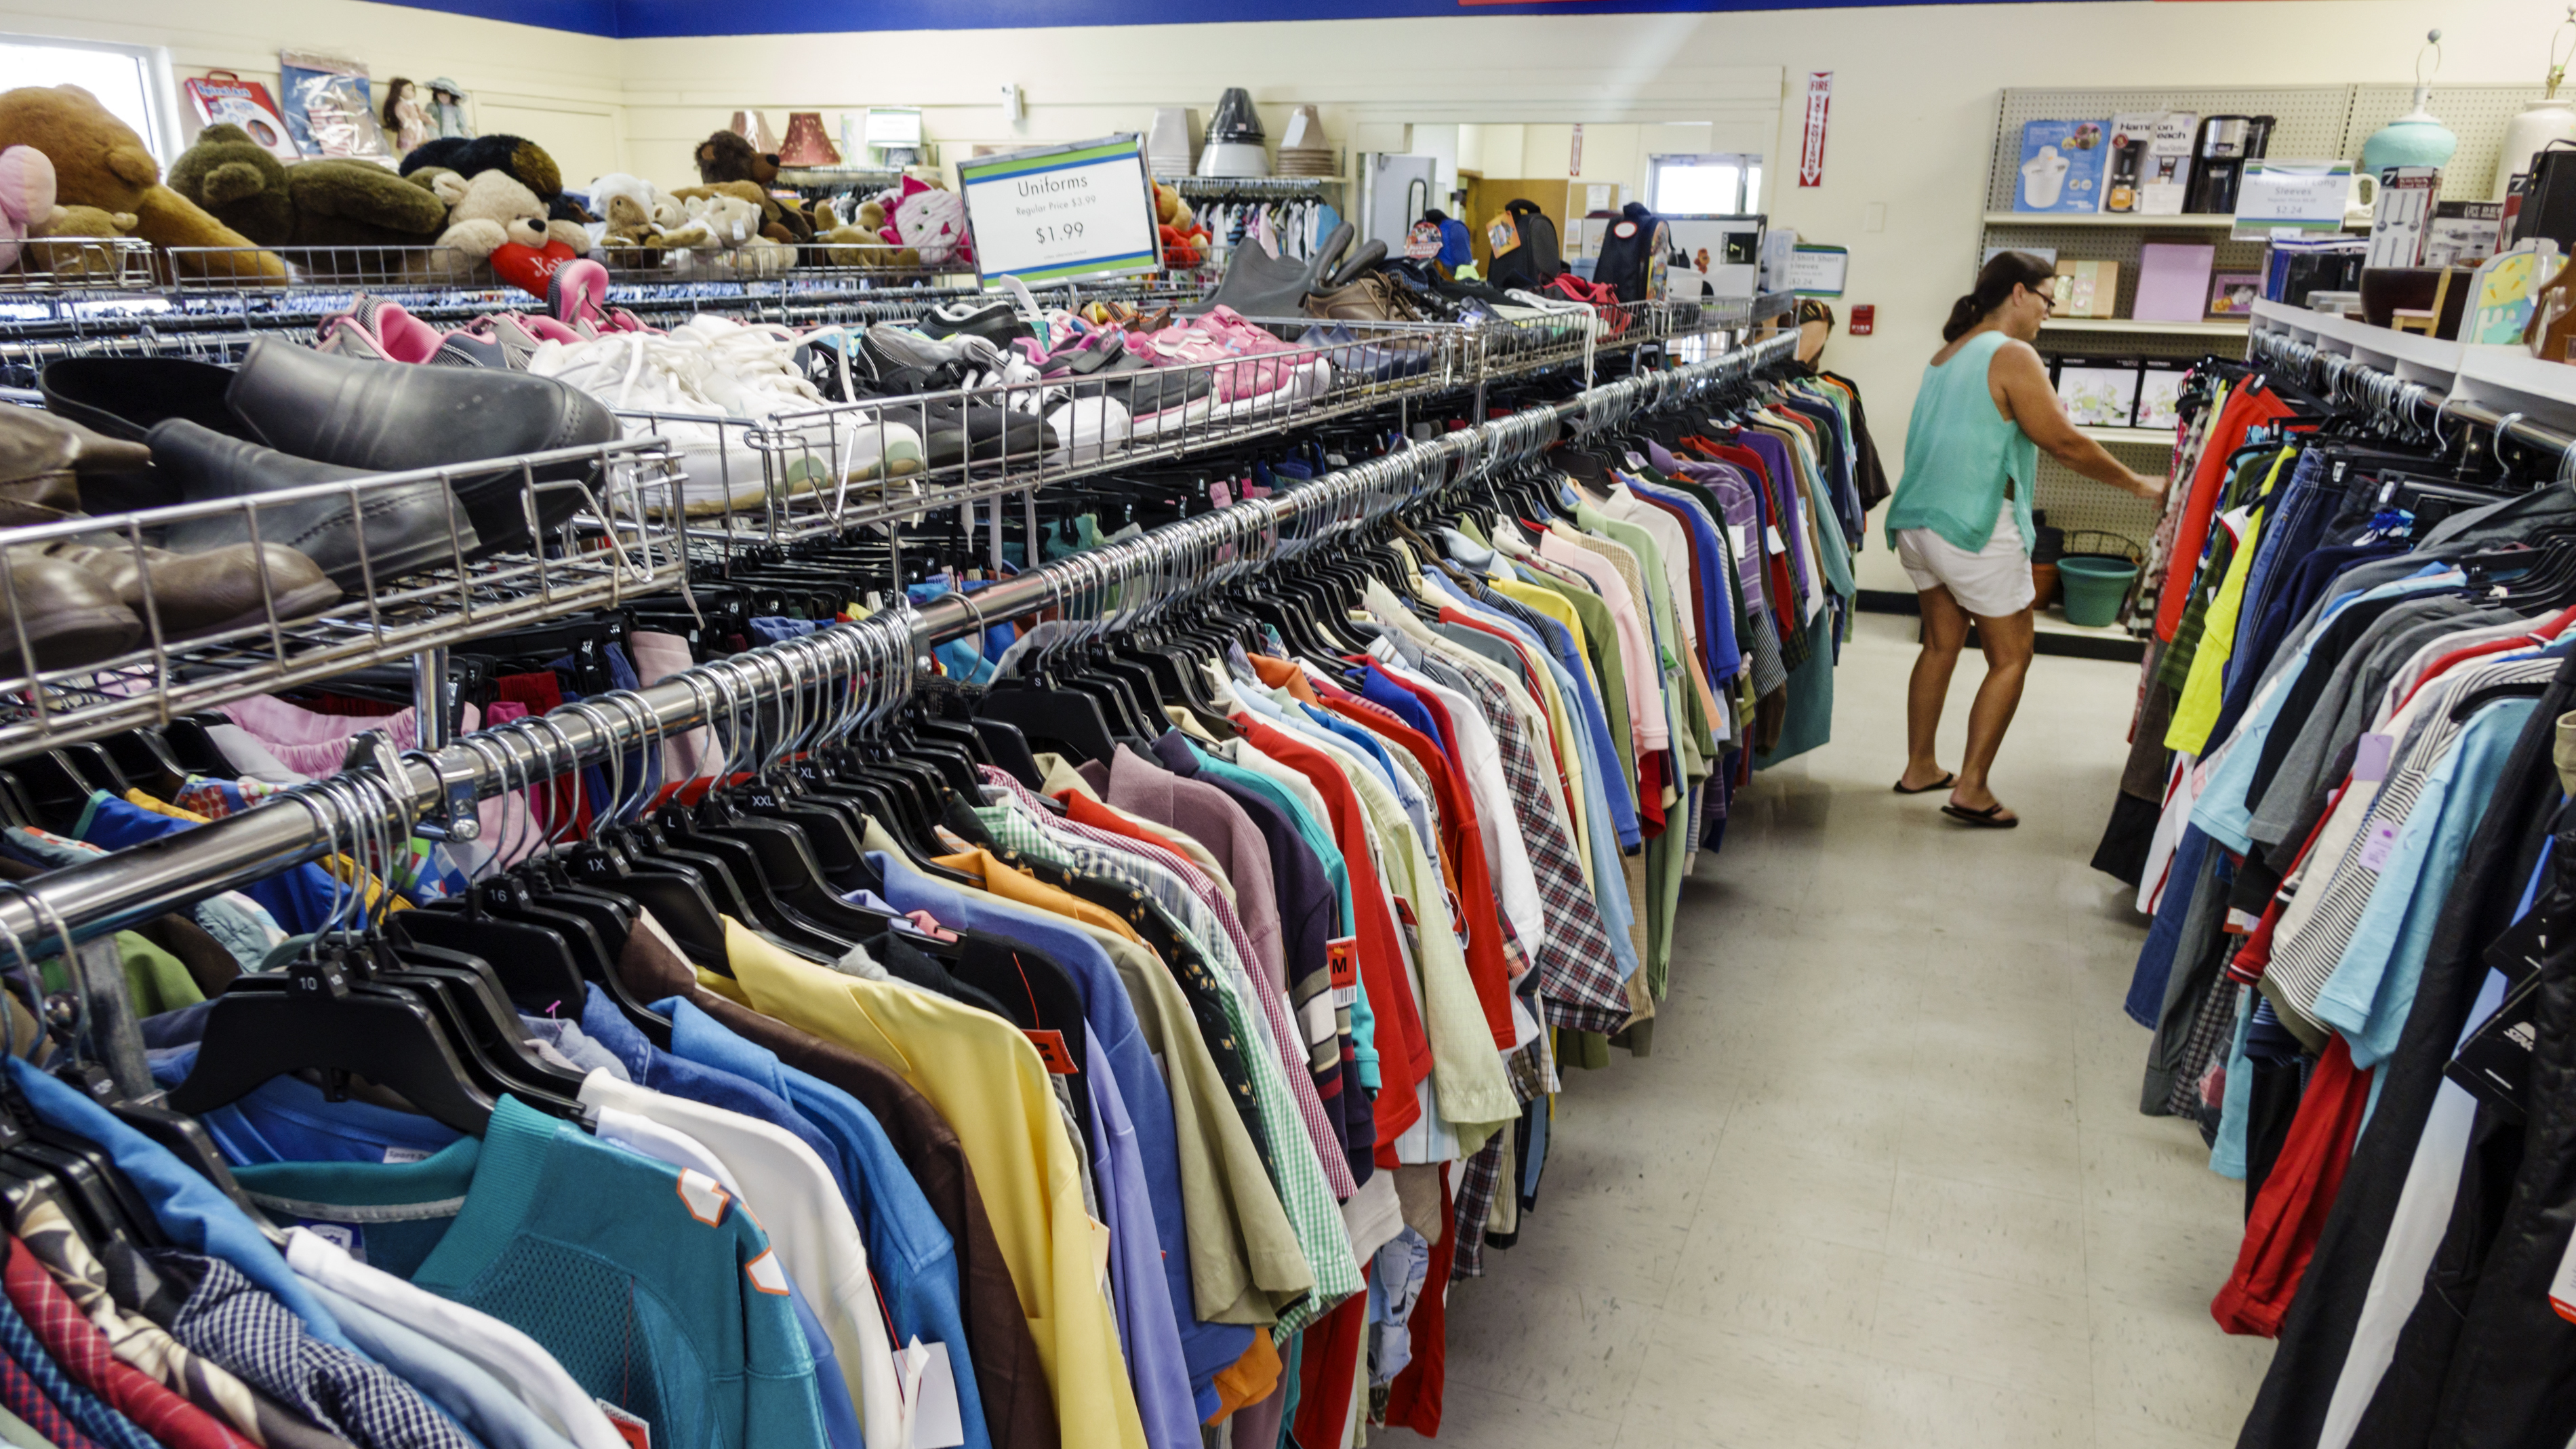 'The Best Thing You Can Do Is Not Buy More Stuff,' Says 'Secondhand' Expert